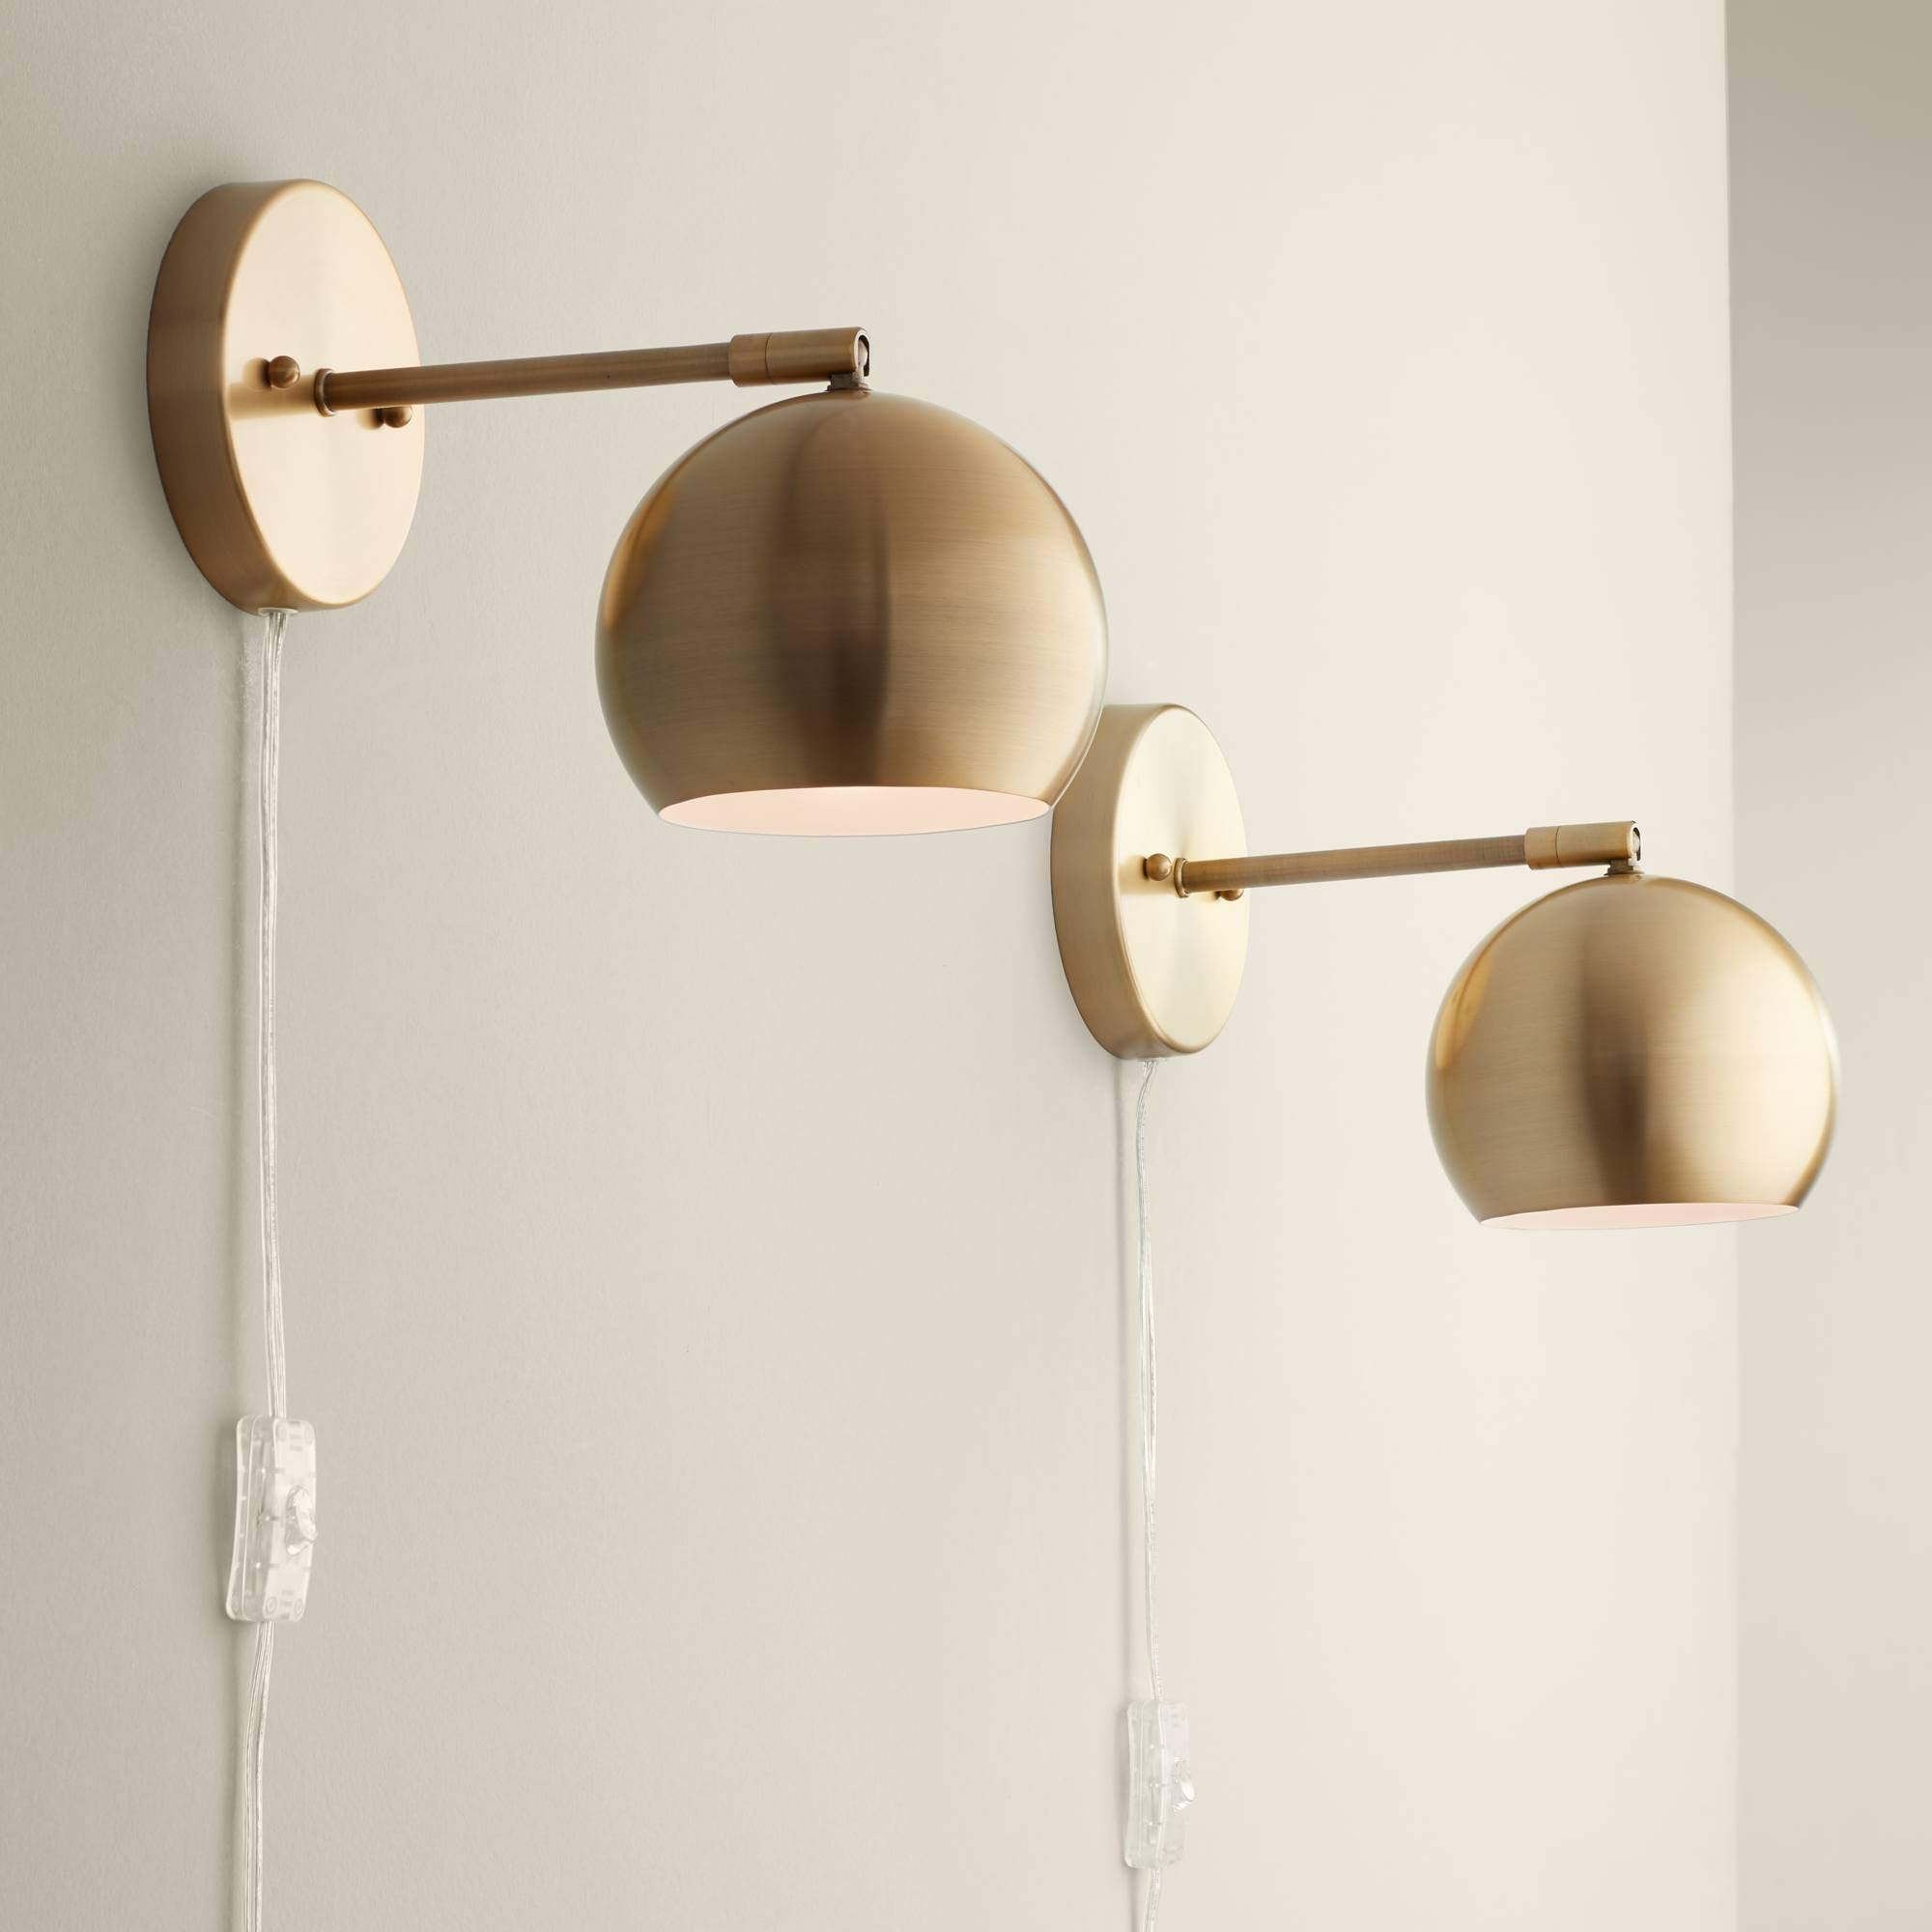 Selena Wall Lights LED Plug in Set of 2 Brass Sphere Shade Pin Up for Bedroom Living Room Reading - 360 Lighting